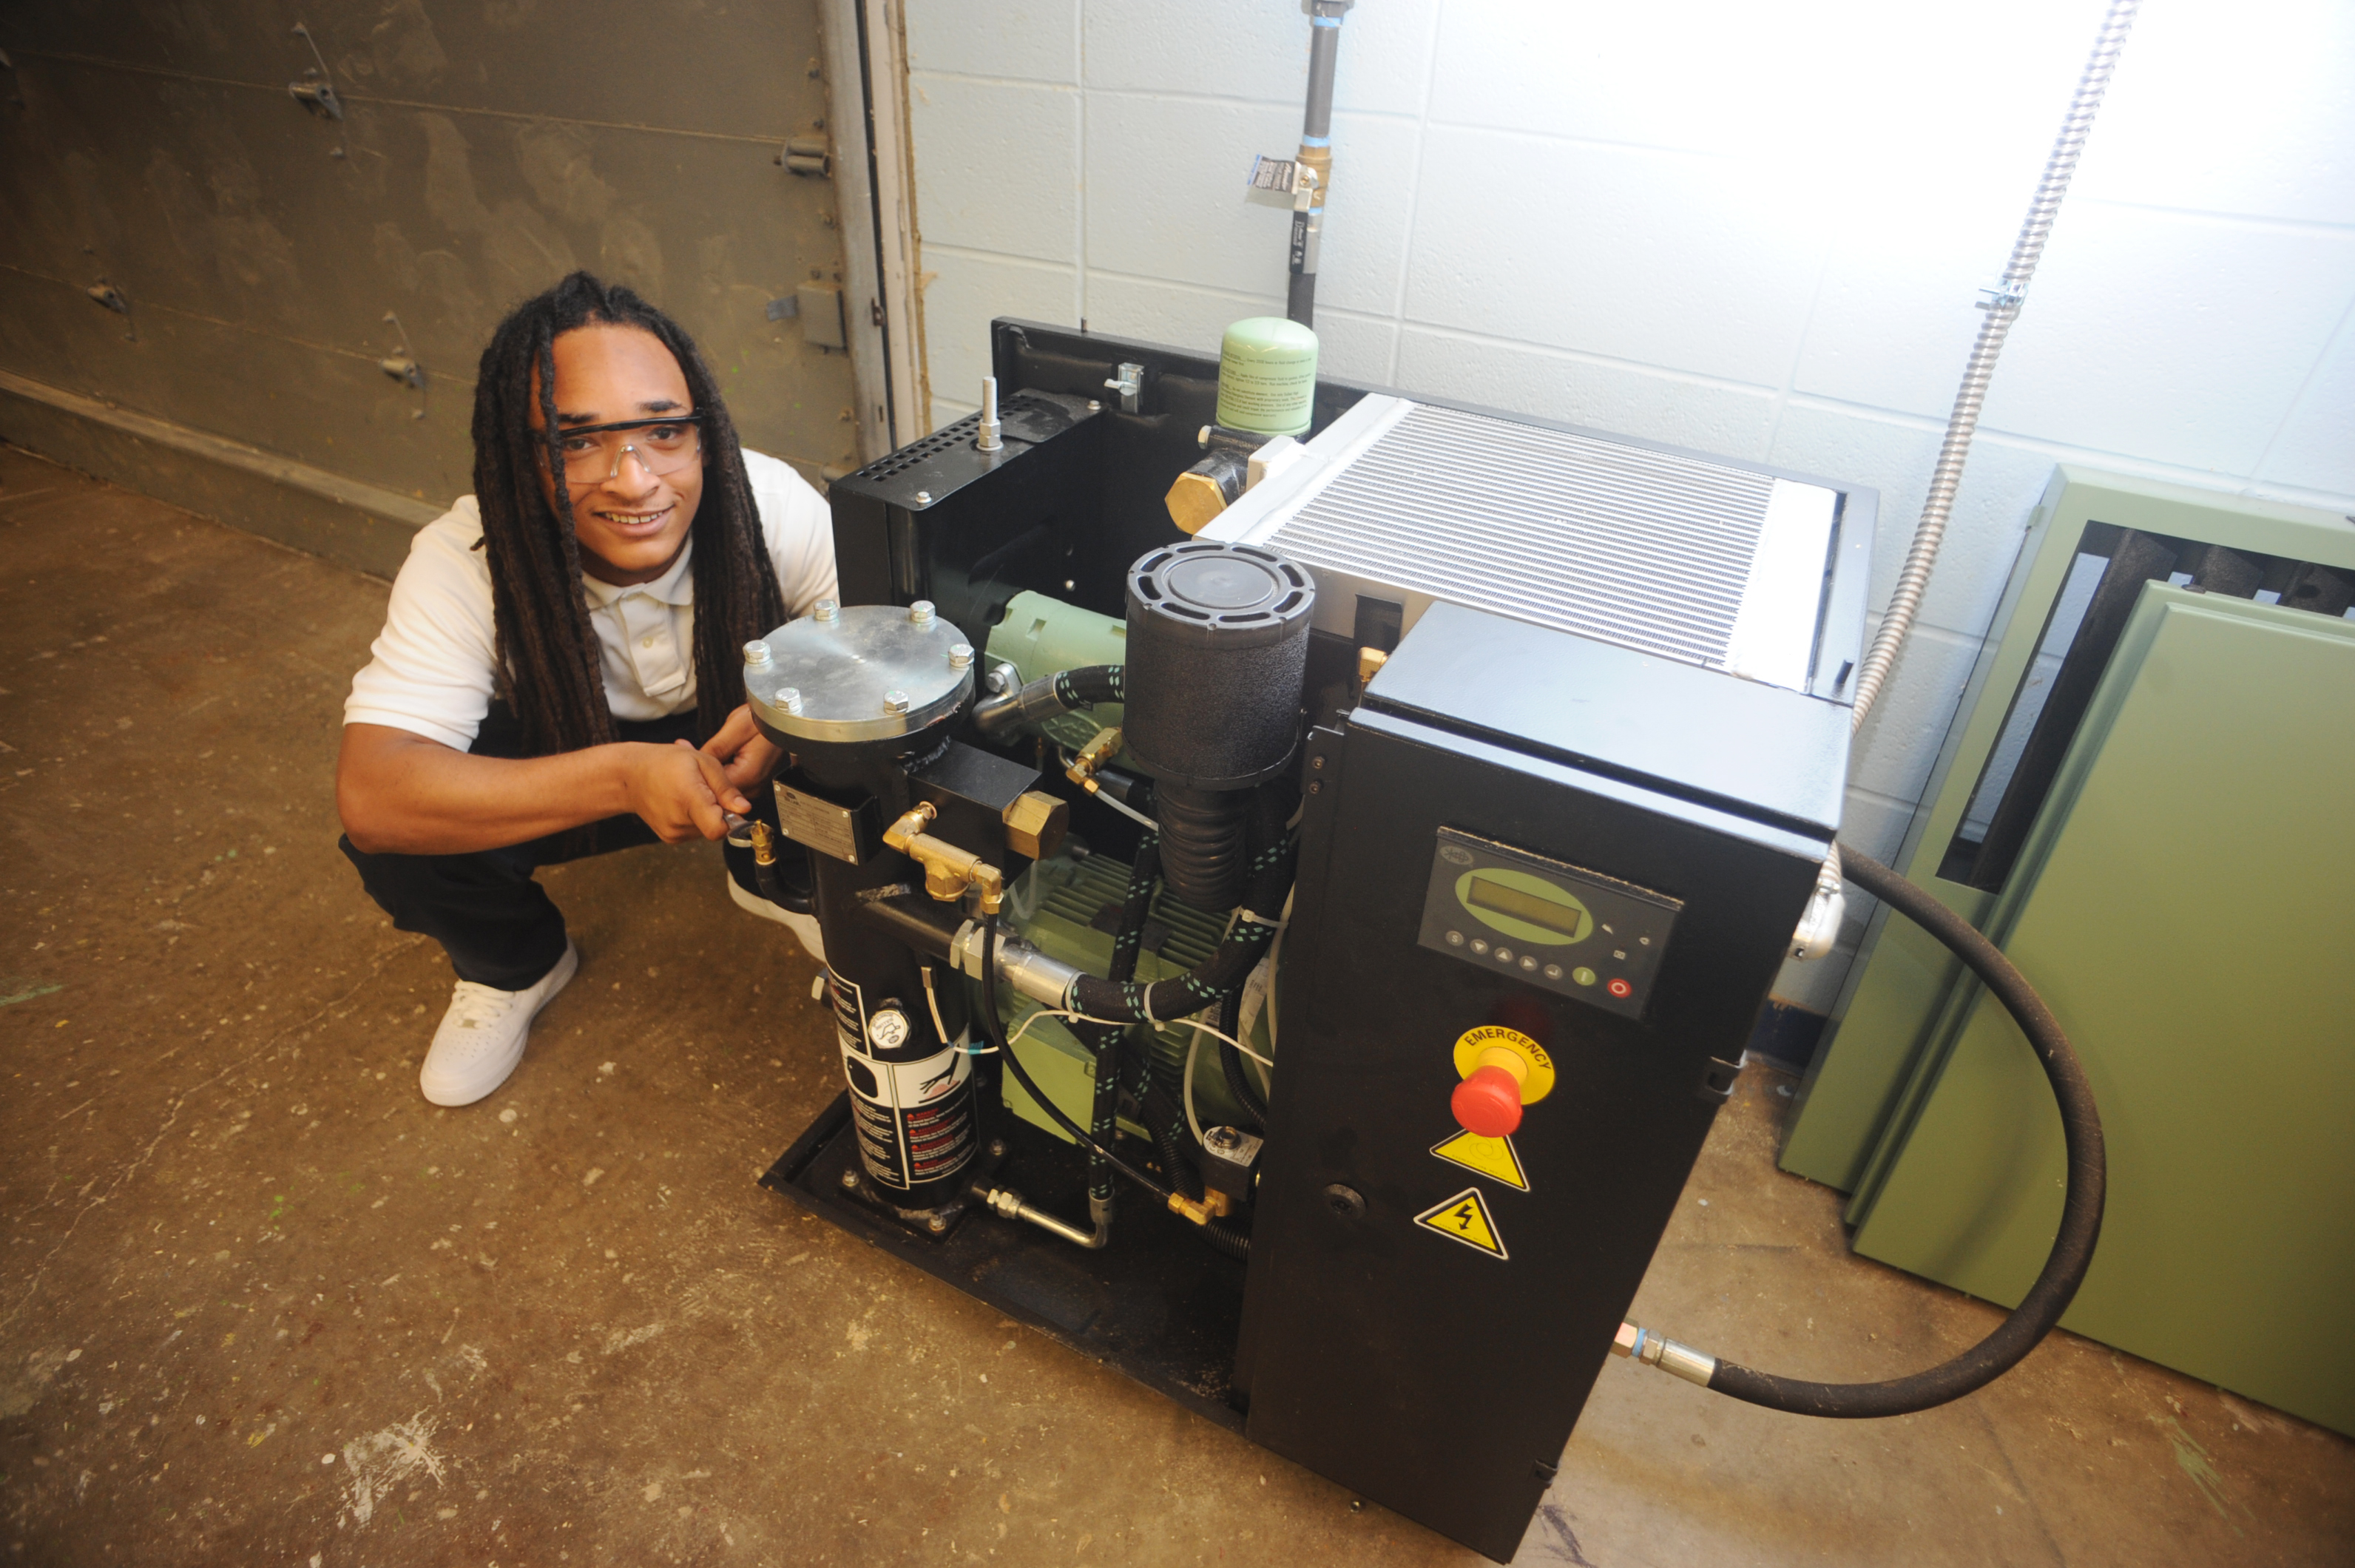 high school student smiles at camera while working on air compressor